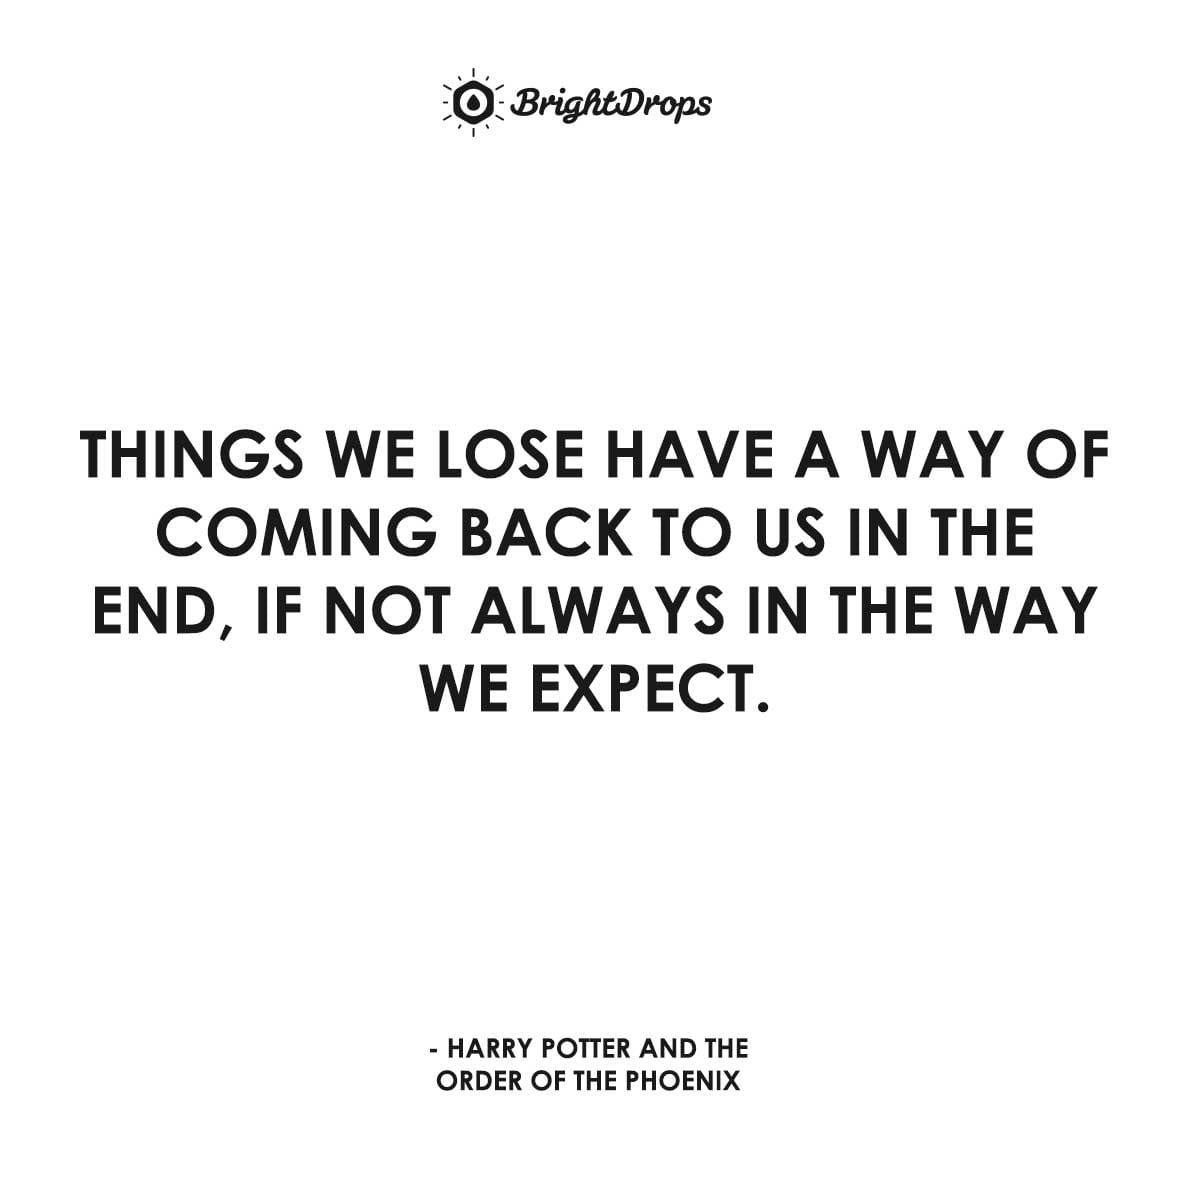 Things we lose have a way of coming back to us in the end, if not always in the way we expect. - Harry Potter and the Order of the Phoenix.